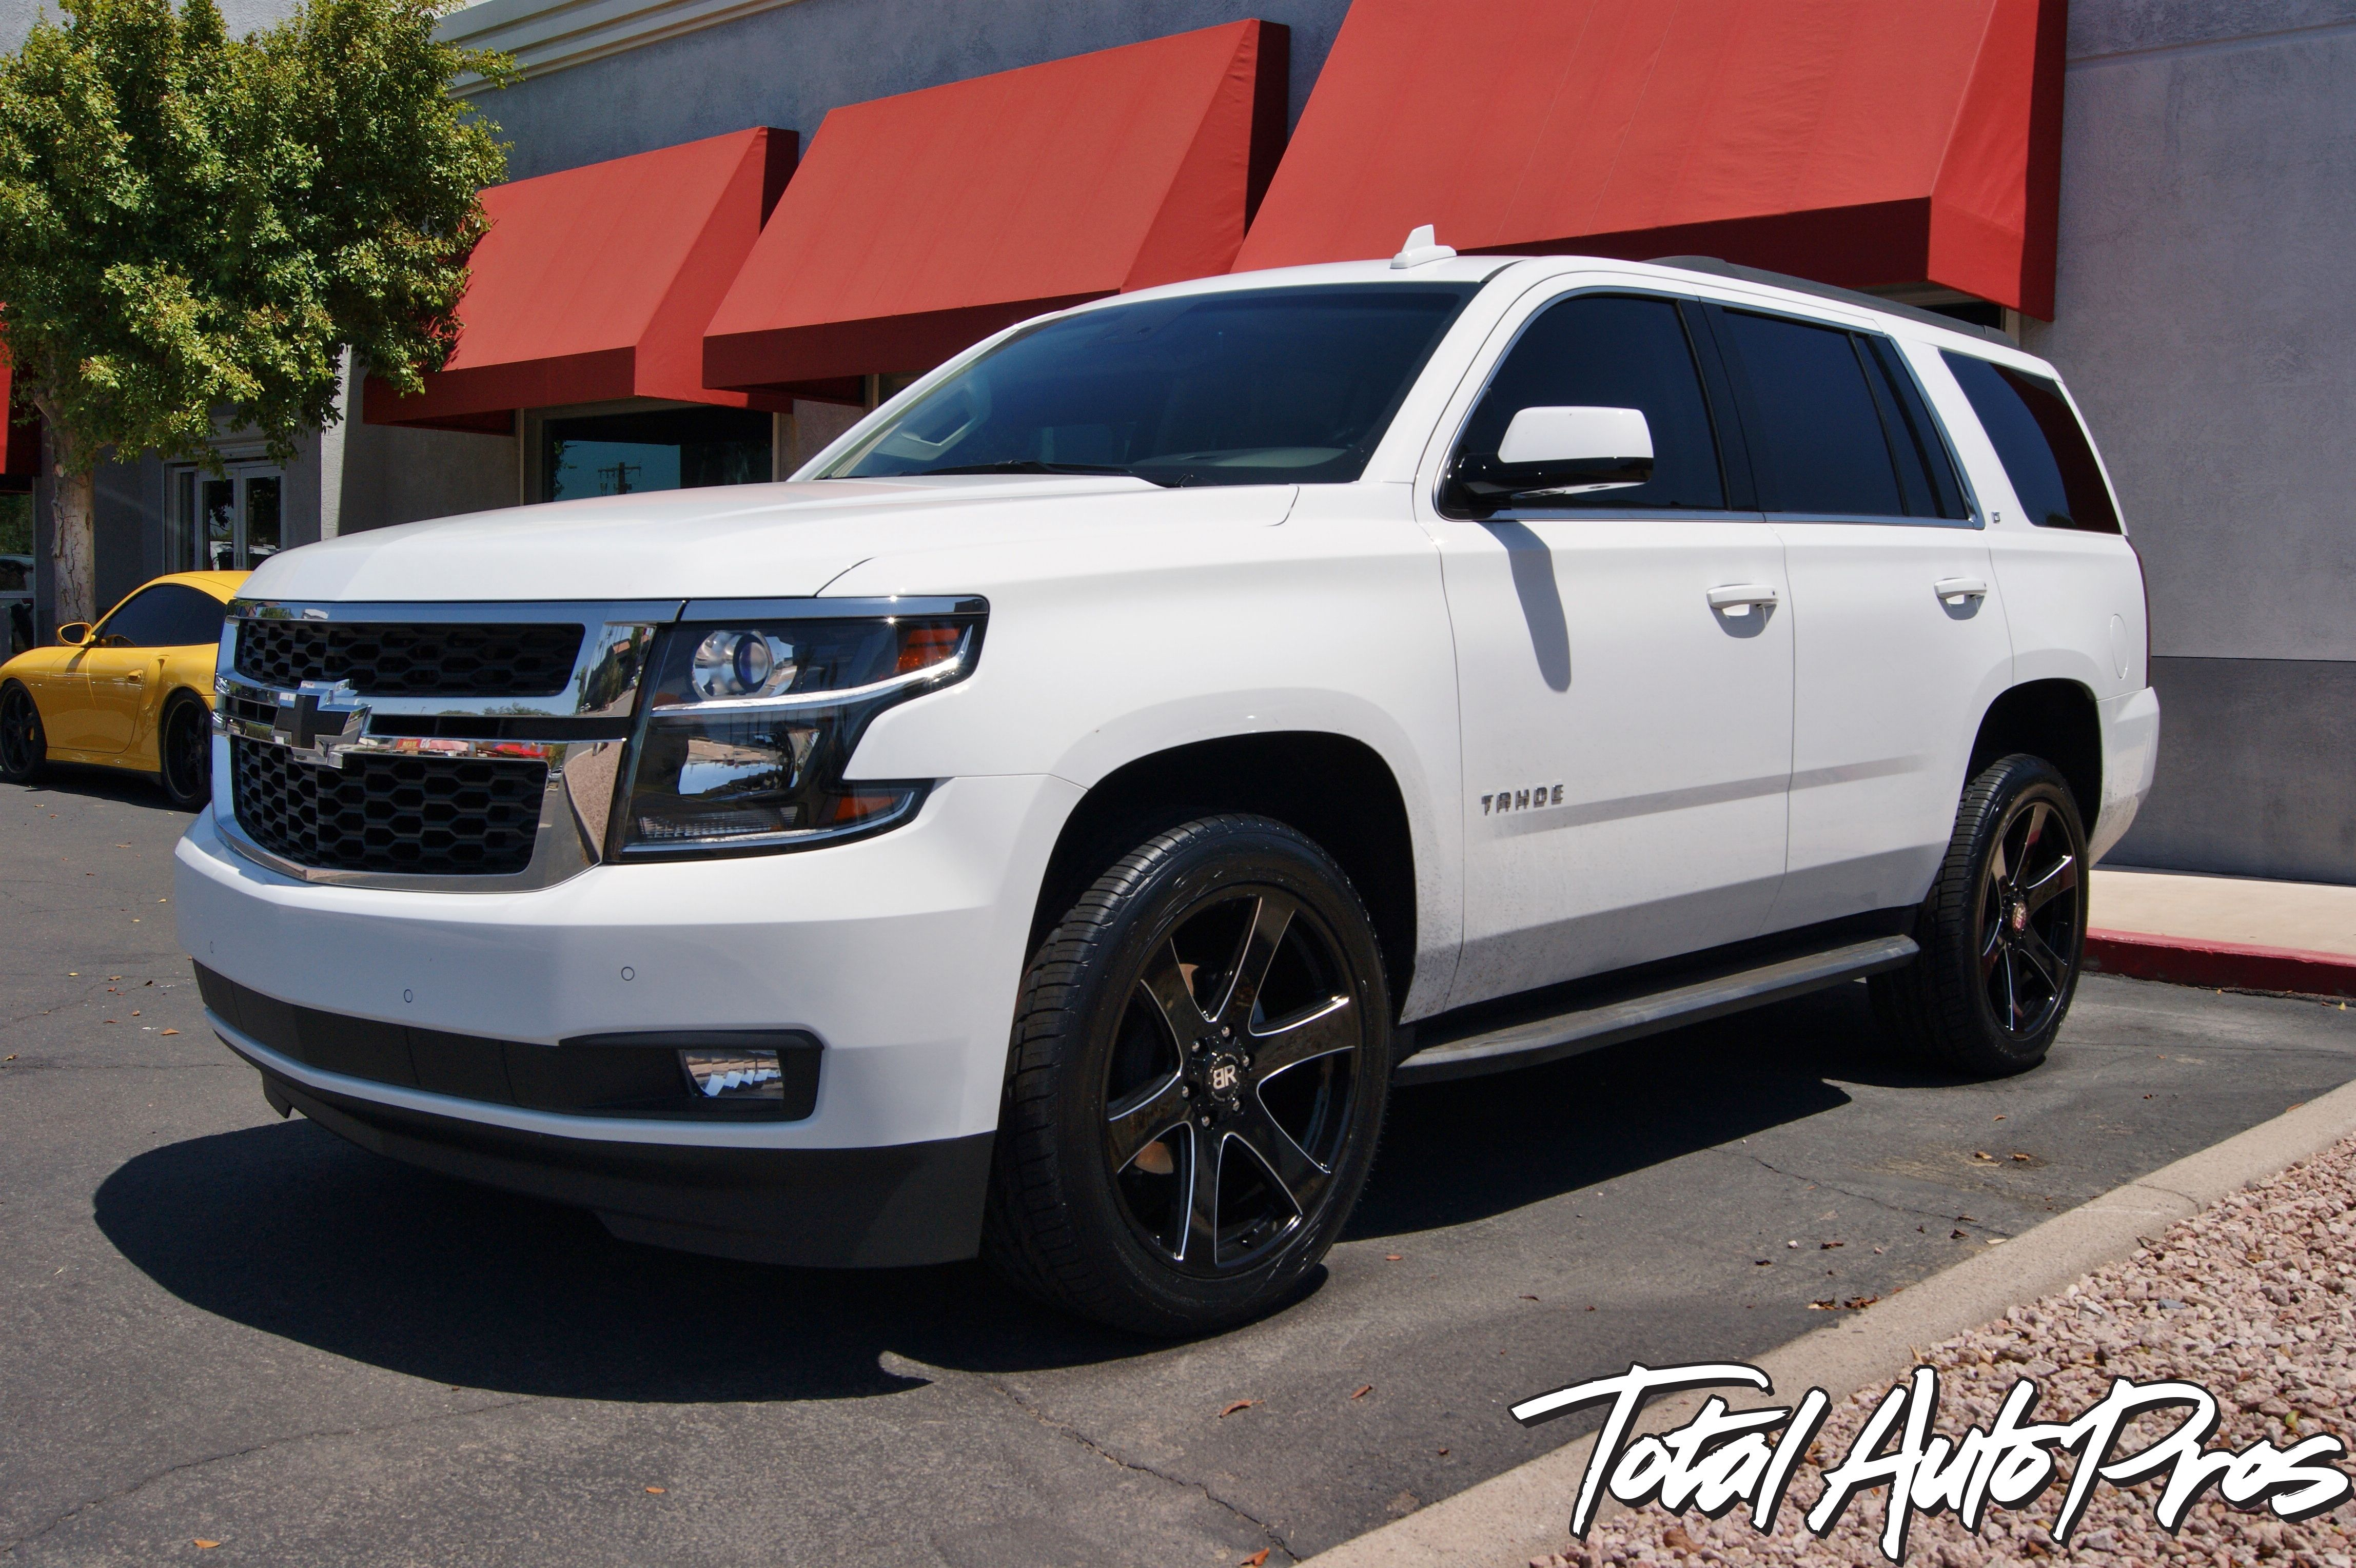 2018 chevrolet rst tahoe new car release date and review 2018 amanda felicia. Black Bedroom Furniture Sets. Home Design Ideas